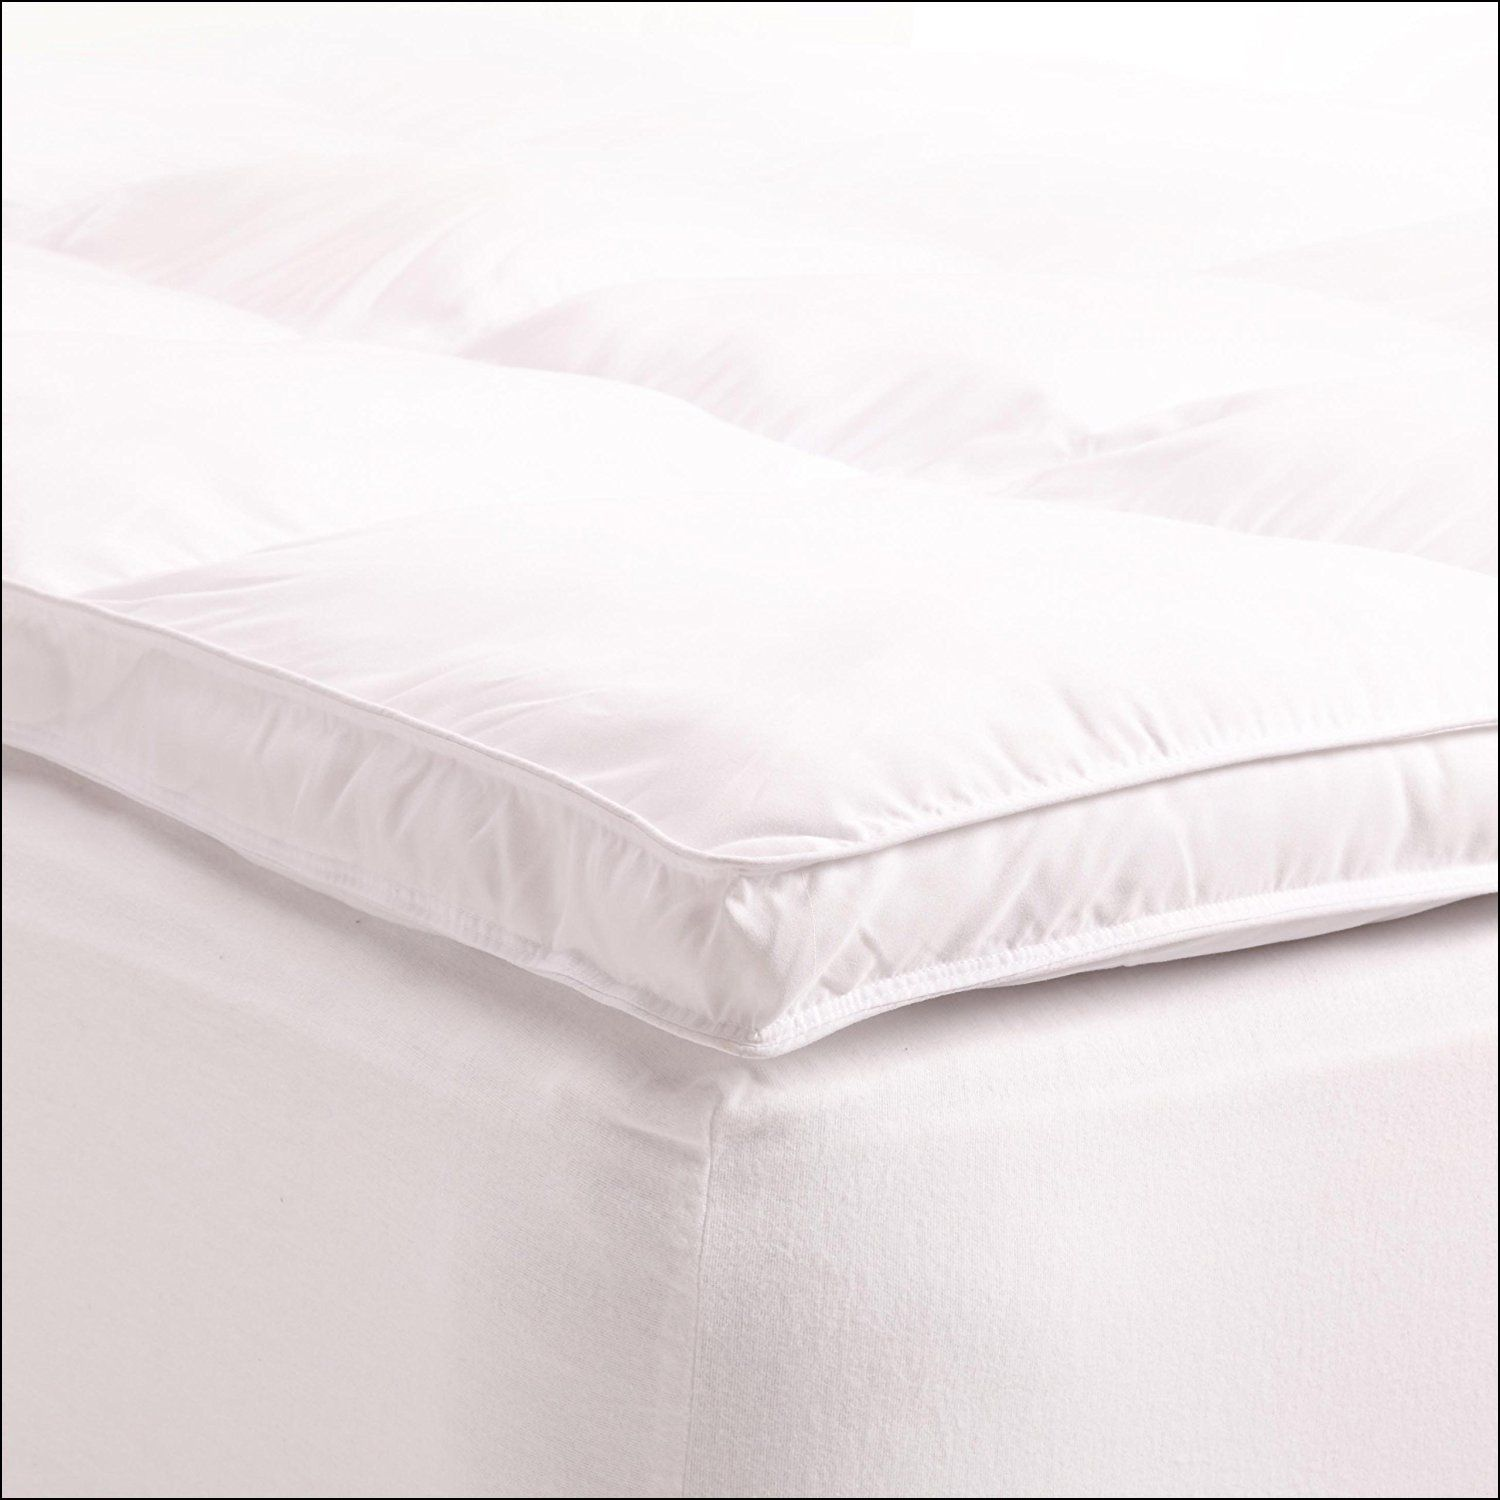 Pillow Top Mattress Covers Beauteous Best Pillow Top Mattress Pad For Back Pain  Mattress Ideas